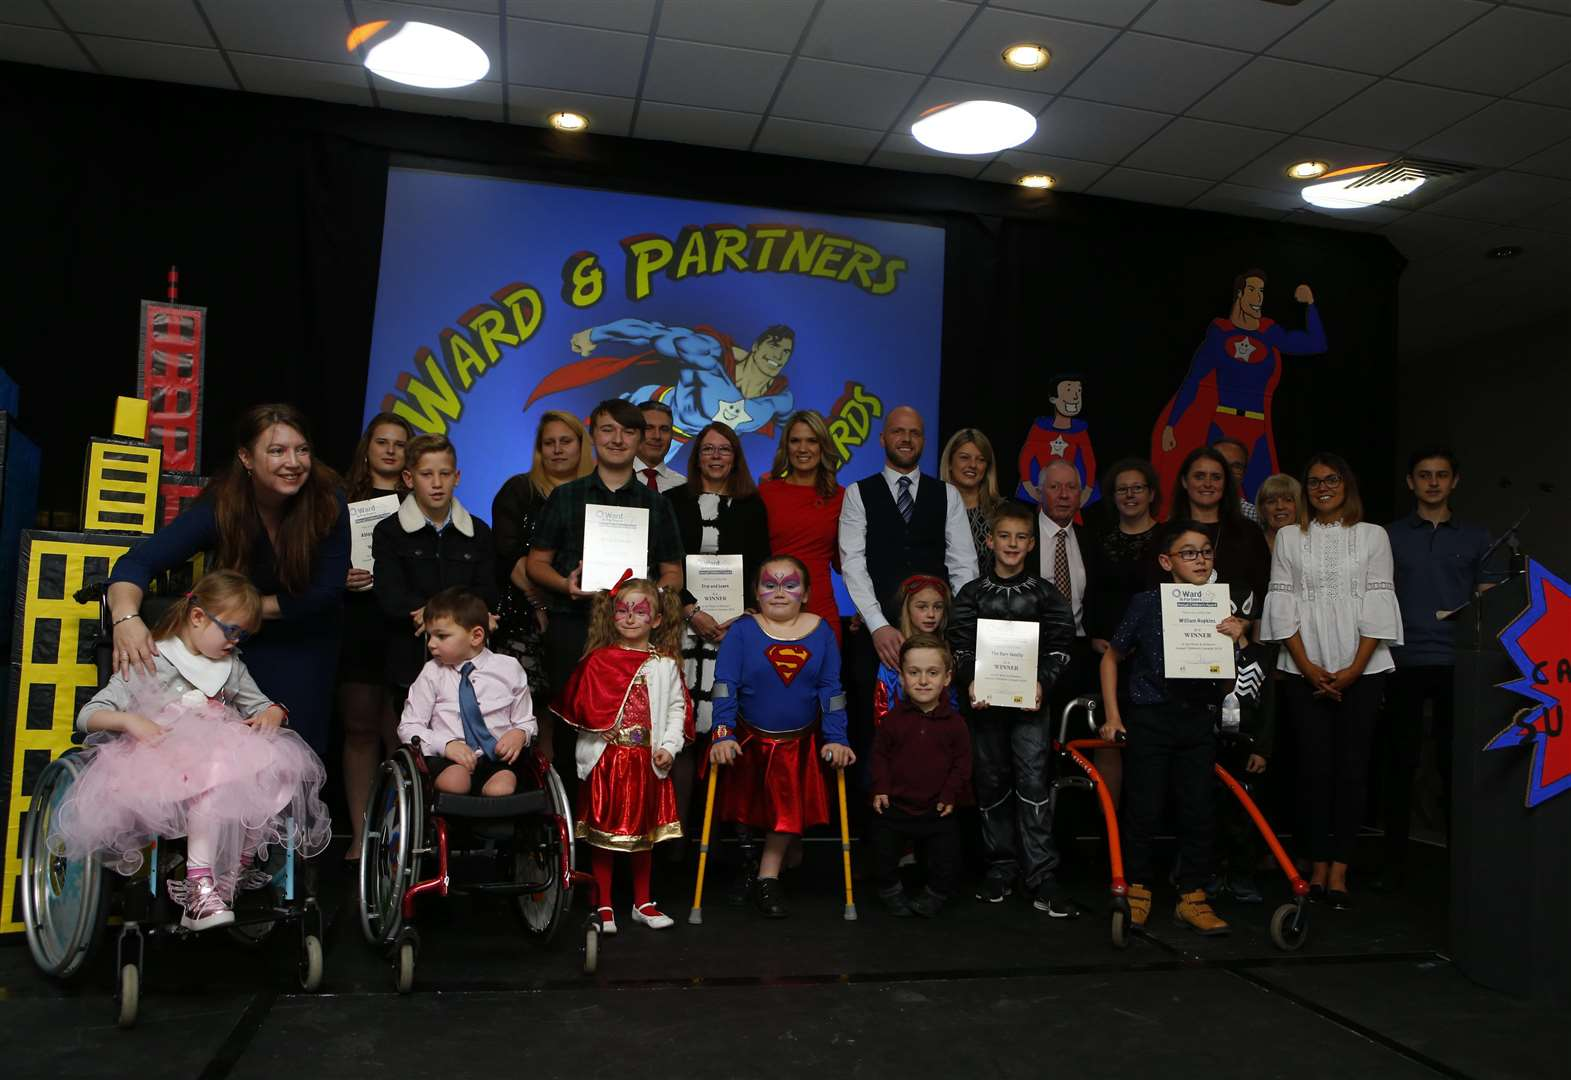 The amazing winners of this year's Ward and Partners Children's Awards